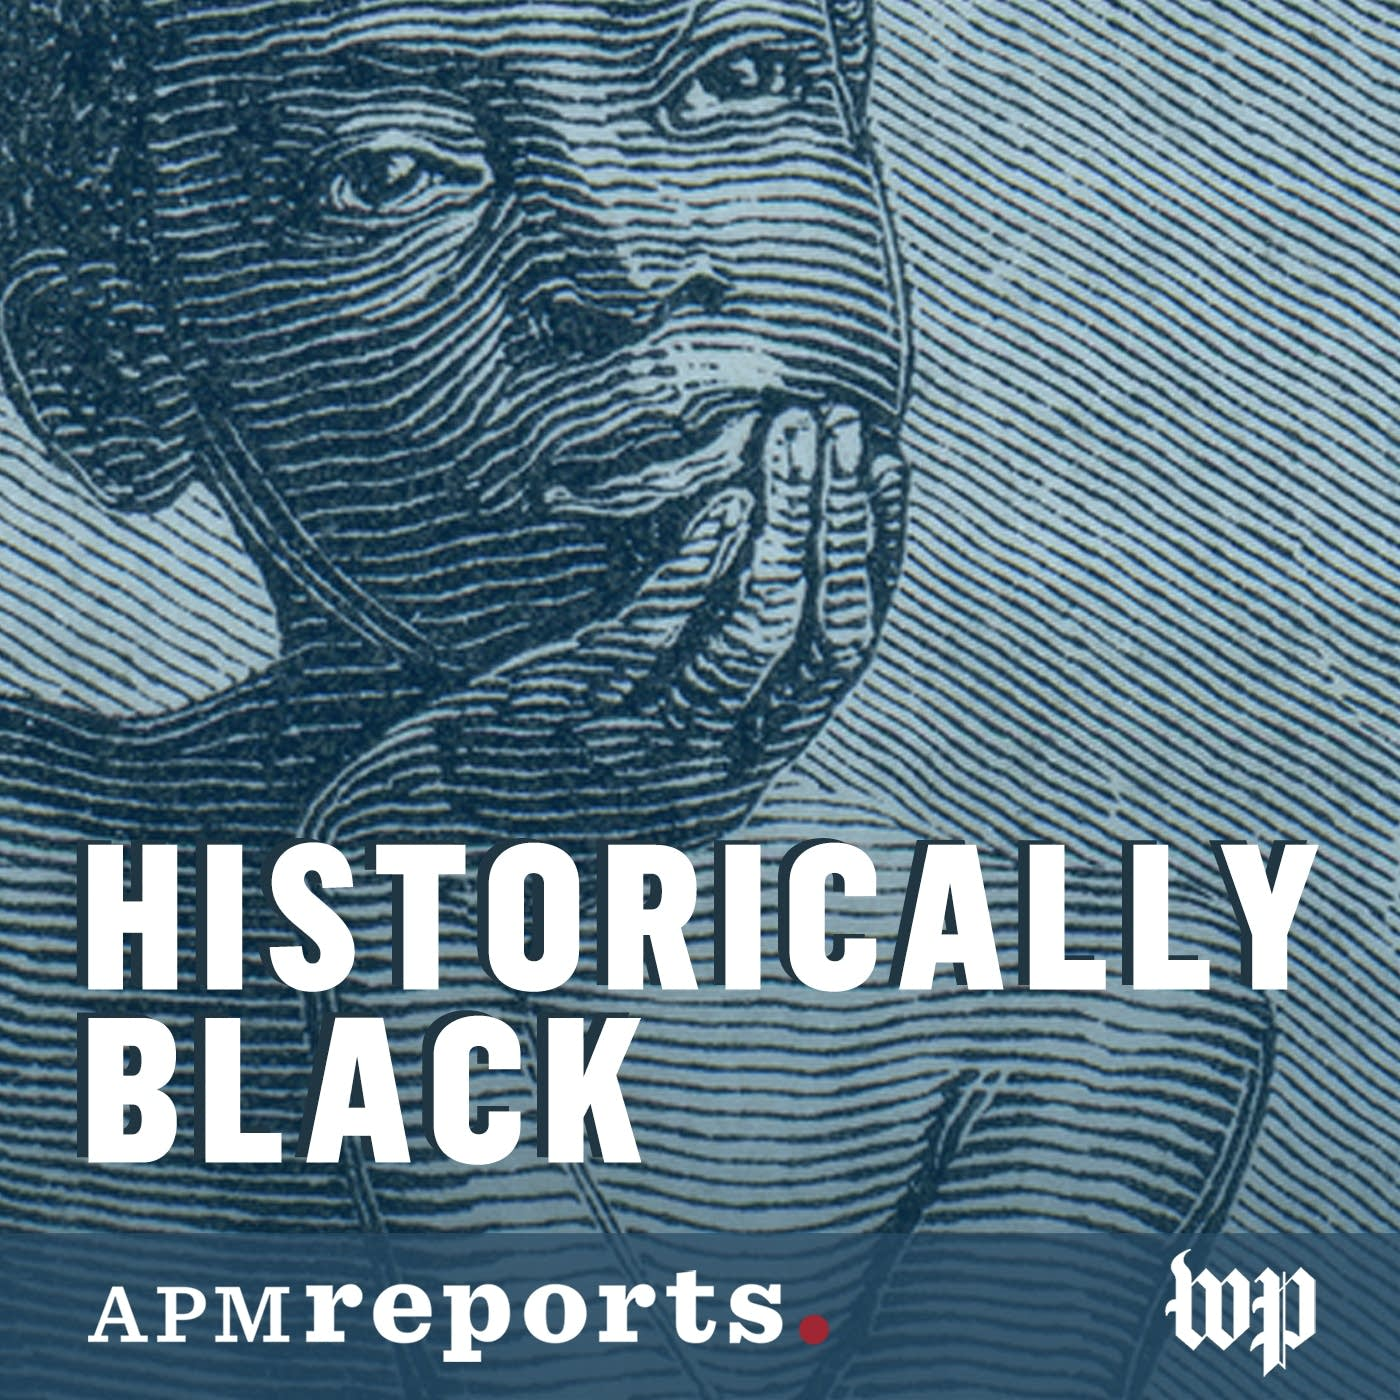 Historically Black podcast artwork